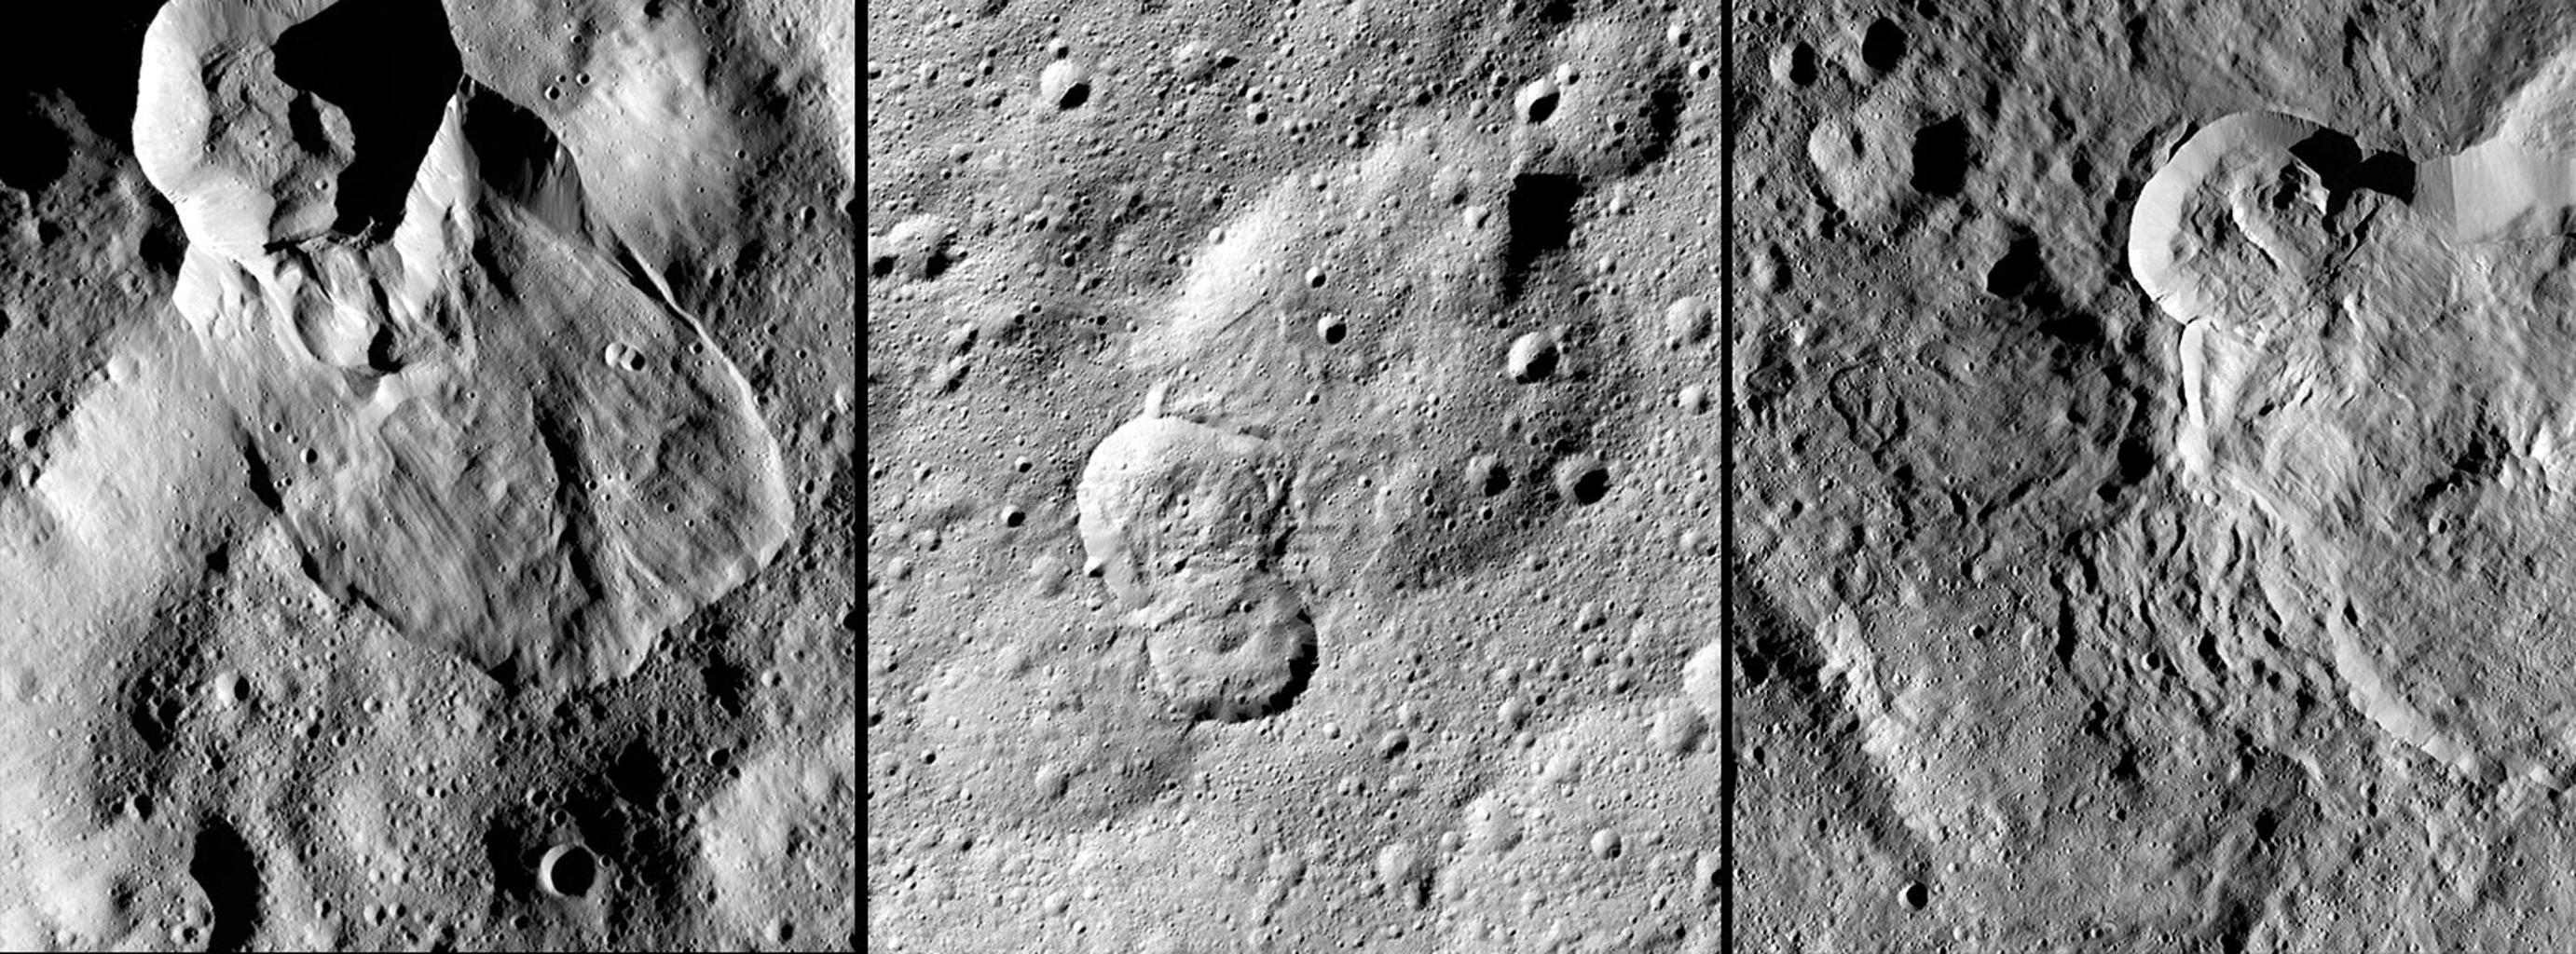 Water ice landslides on dwarf planet Ceres